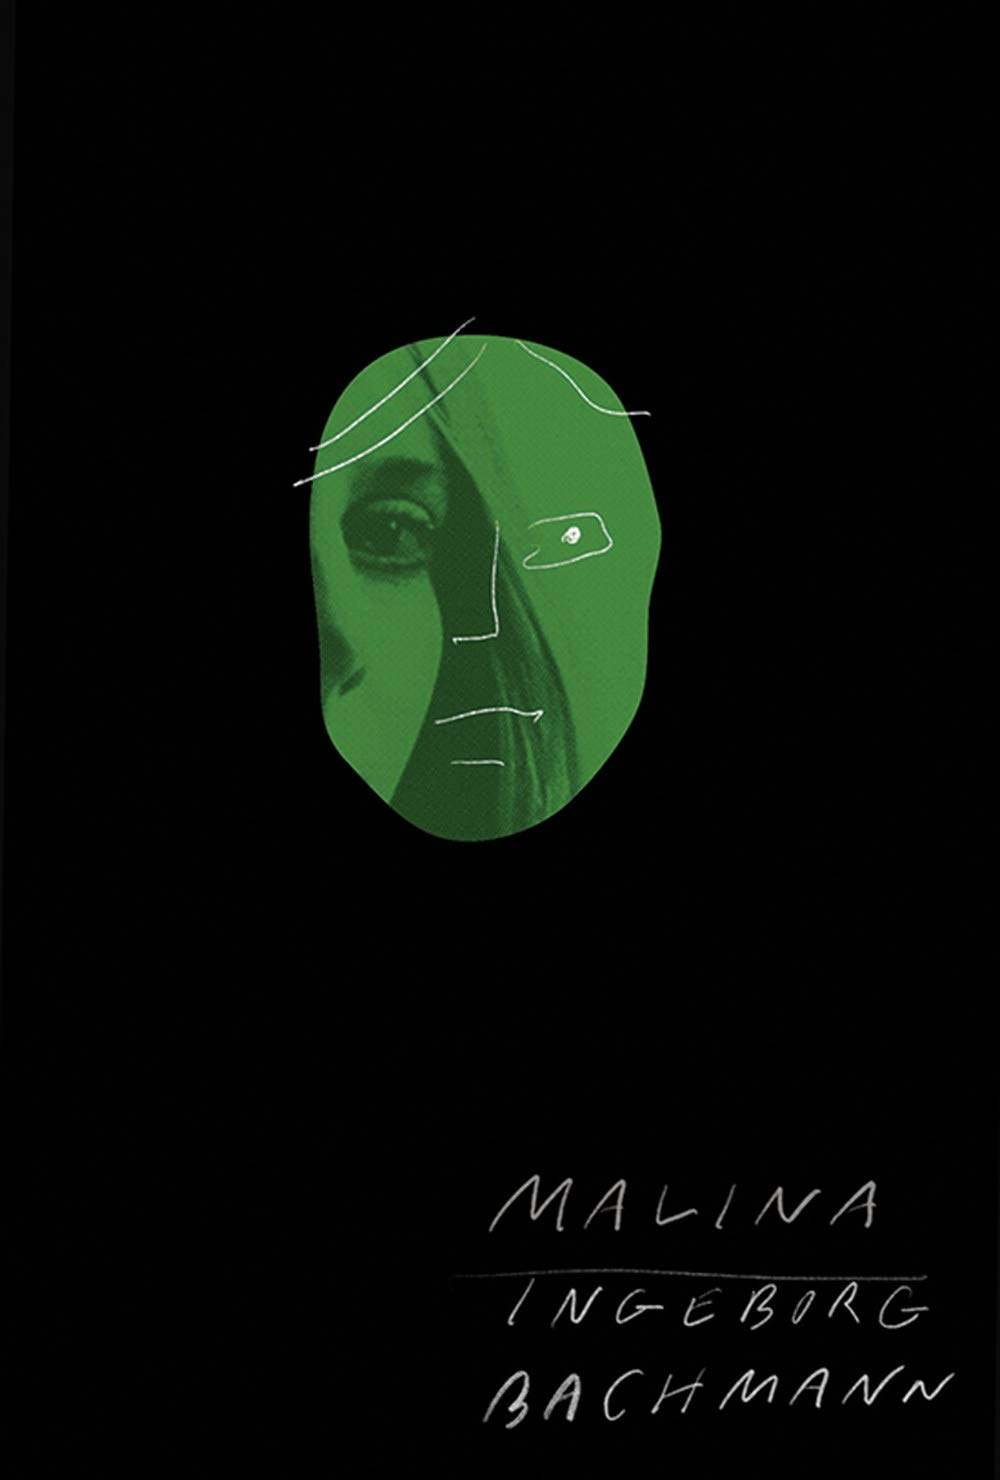 The cover of Malina